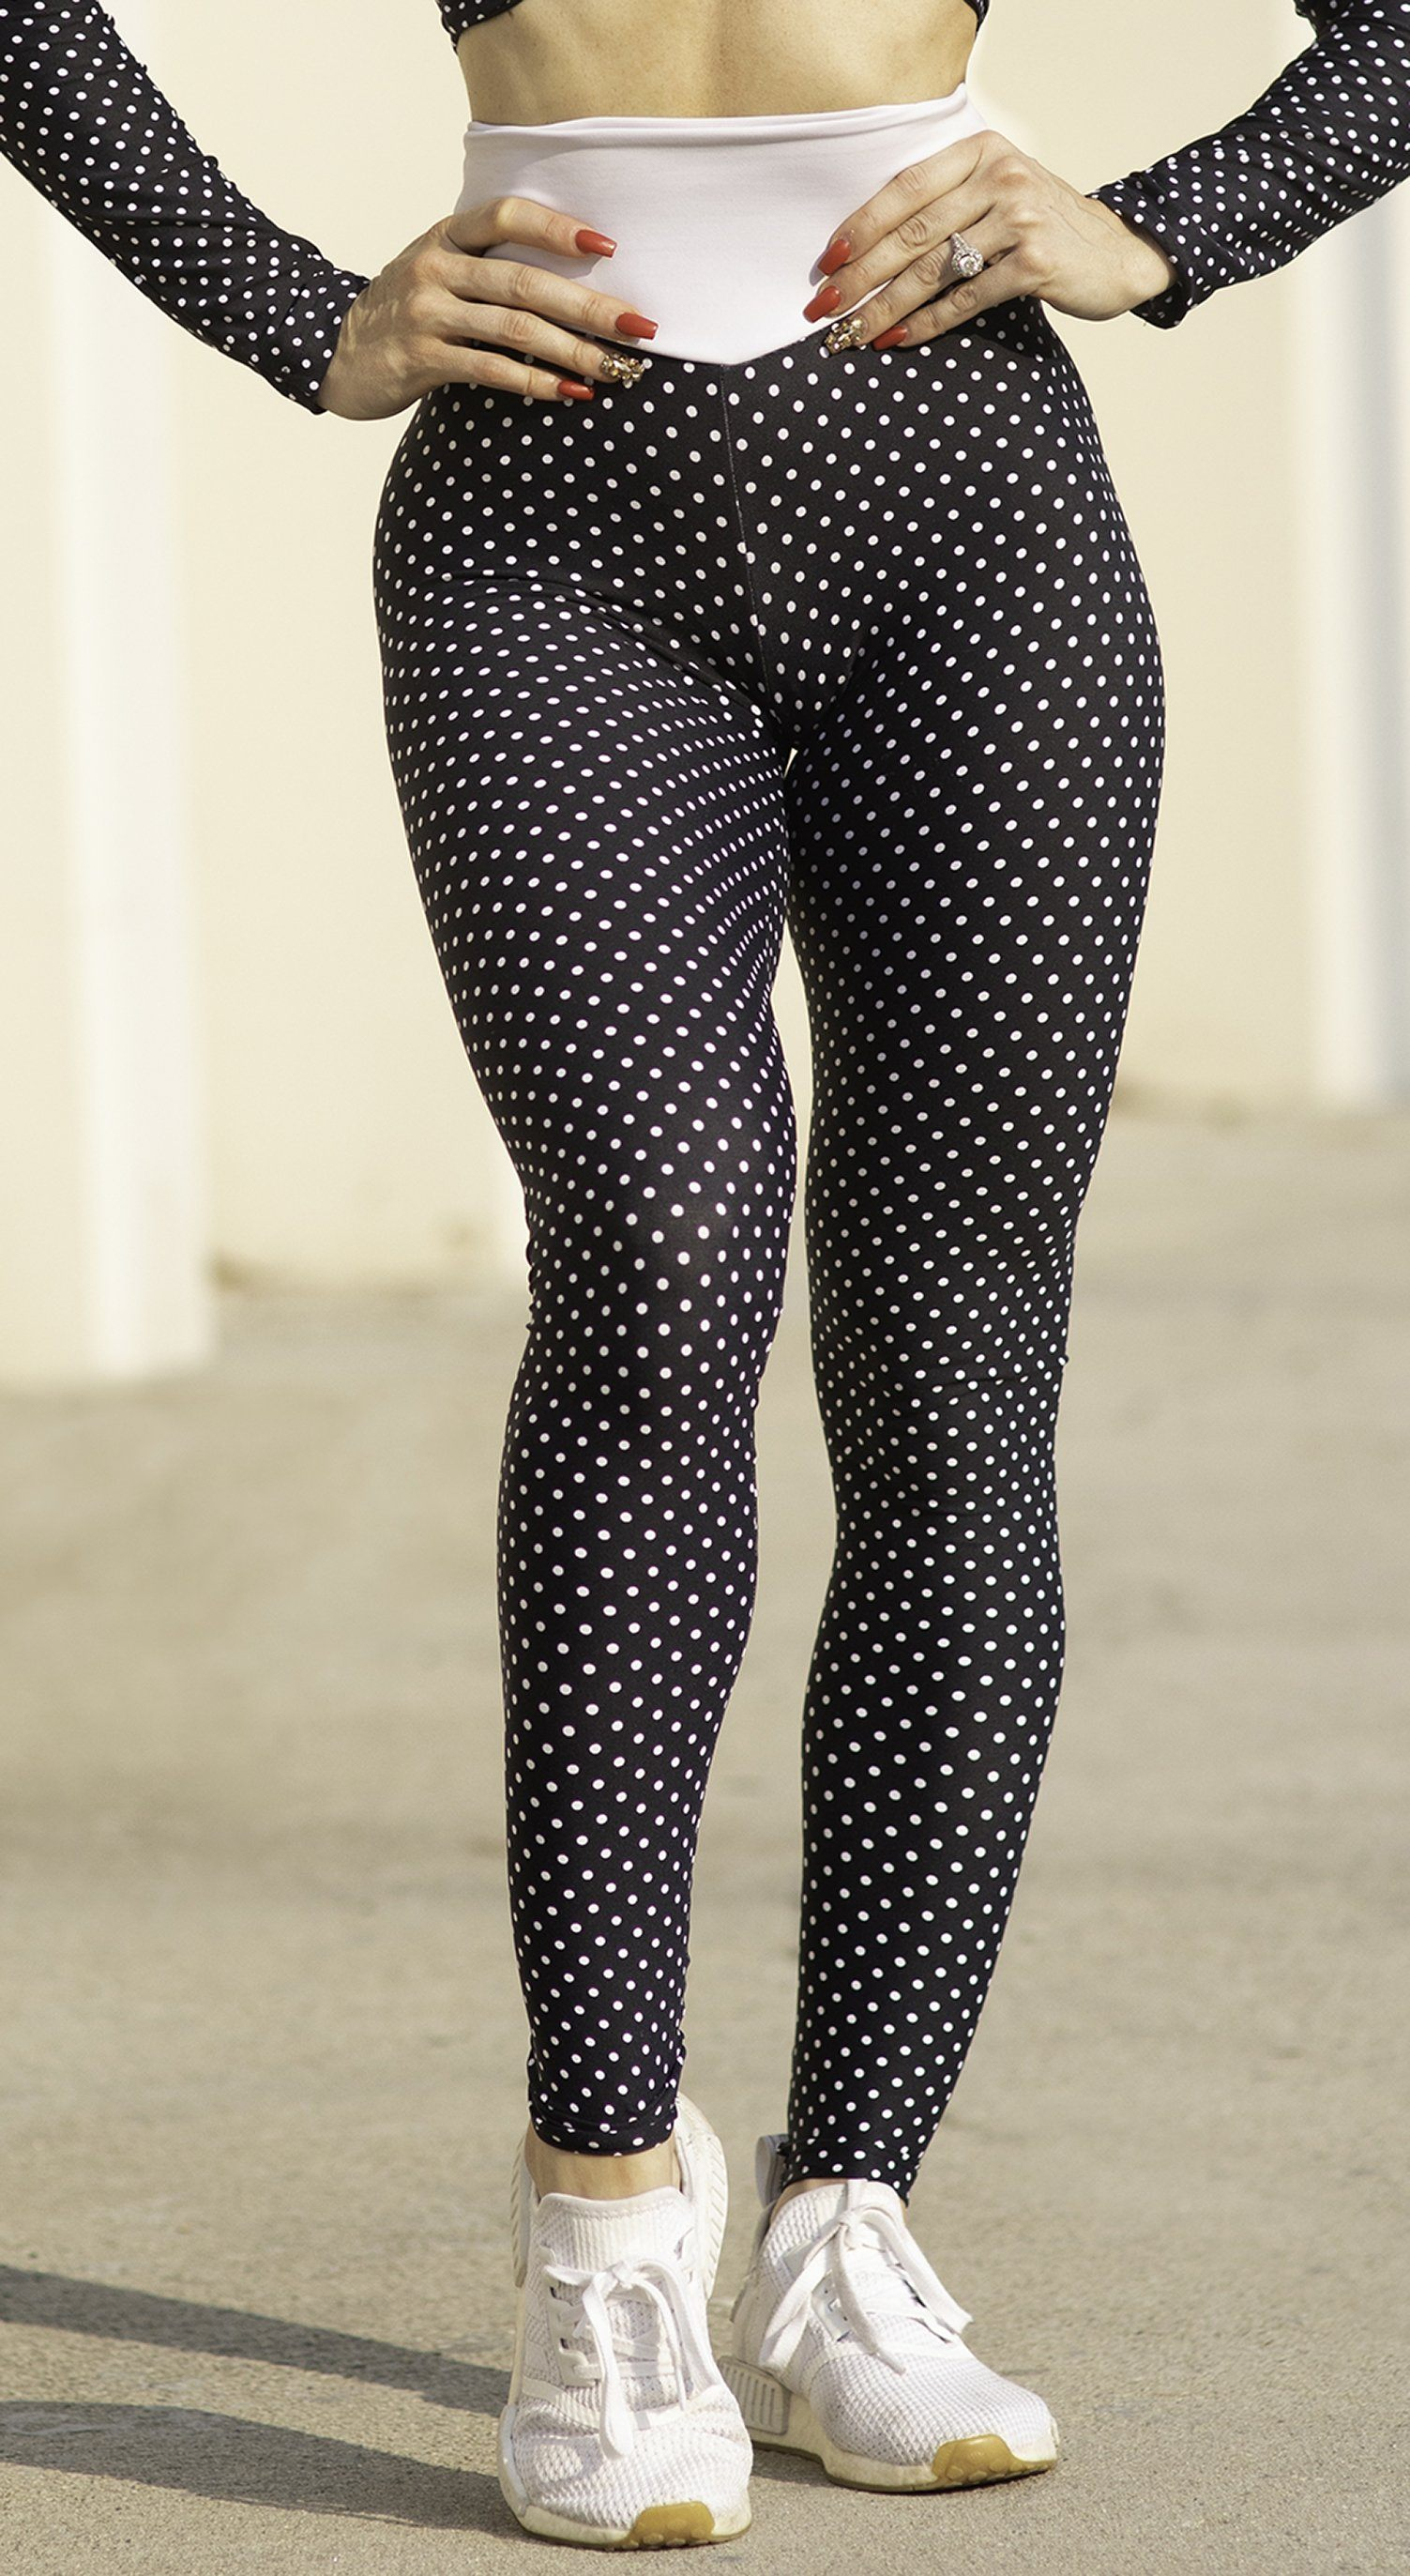 Brazilian Workout Legging - High Waist Scrunch Booty Lift! Polka Dots